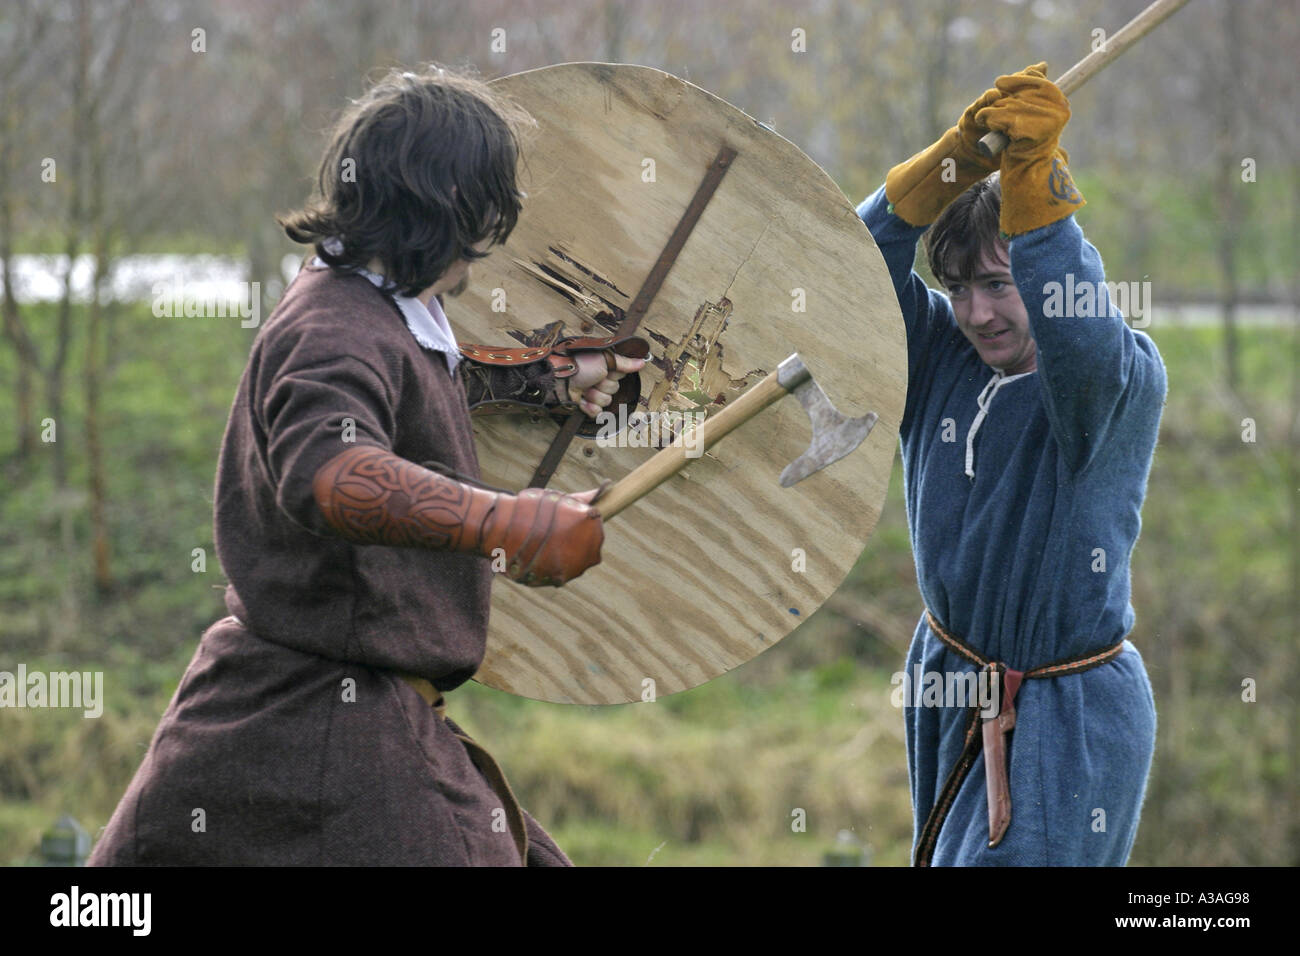 iron age reinactor role players in costume battle shields axes ecos centre ballymena st Patrick s day county antrim - Stock Image